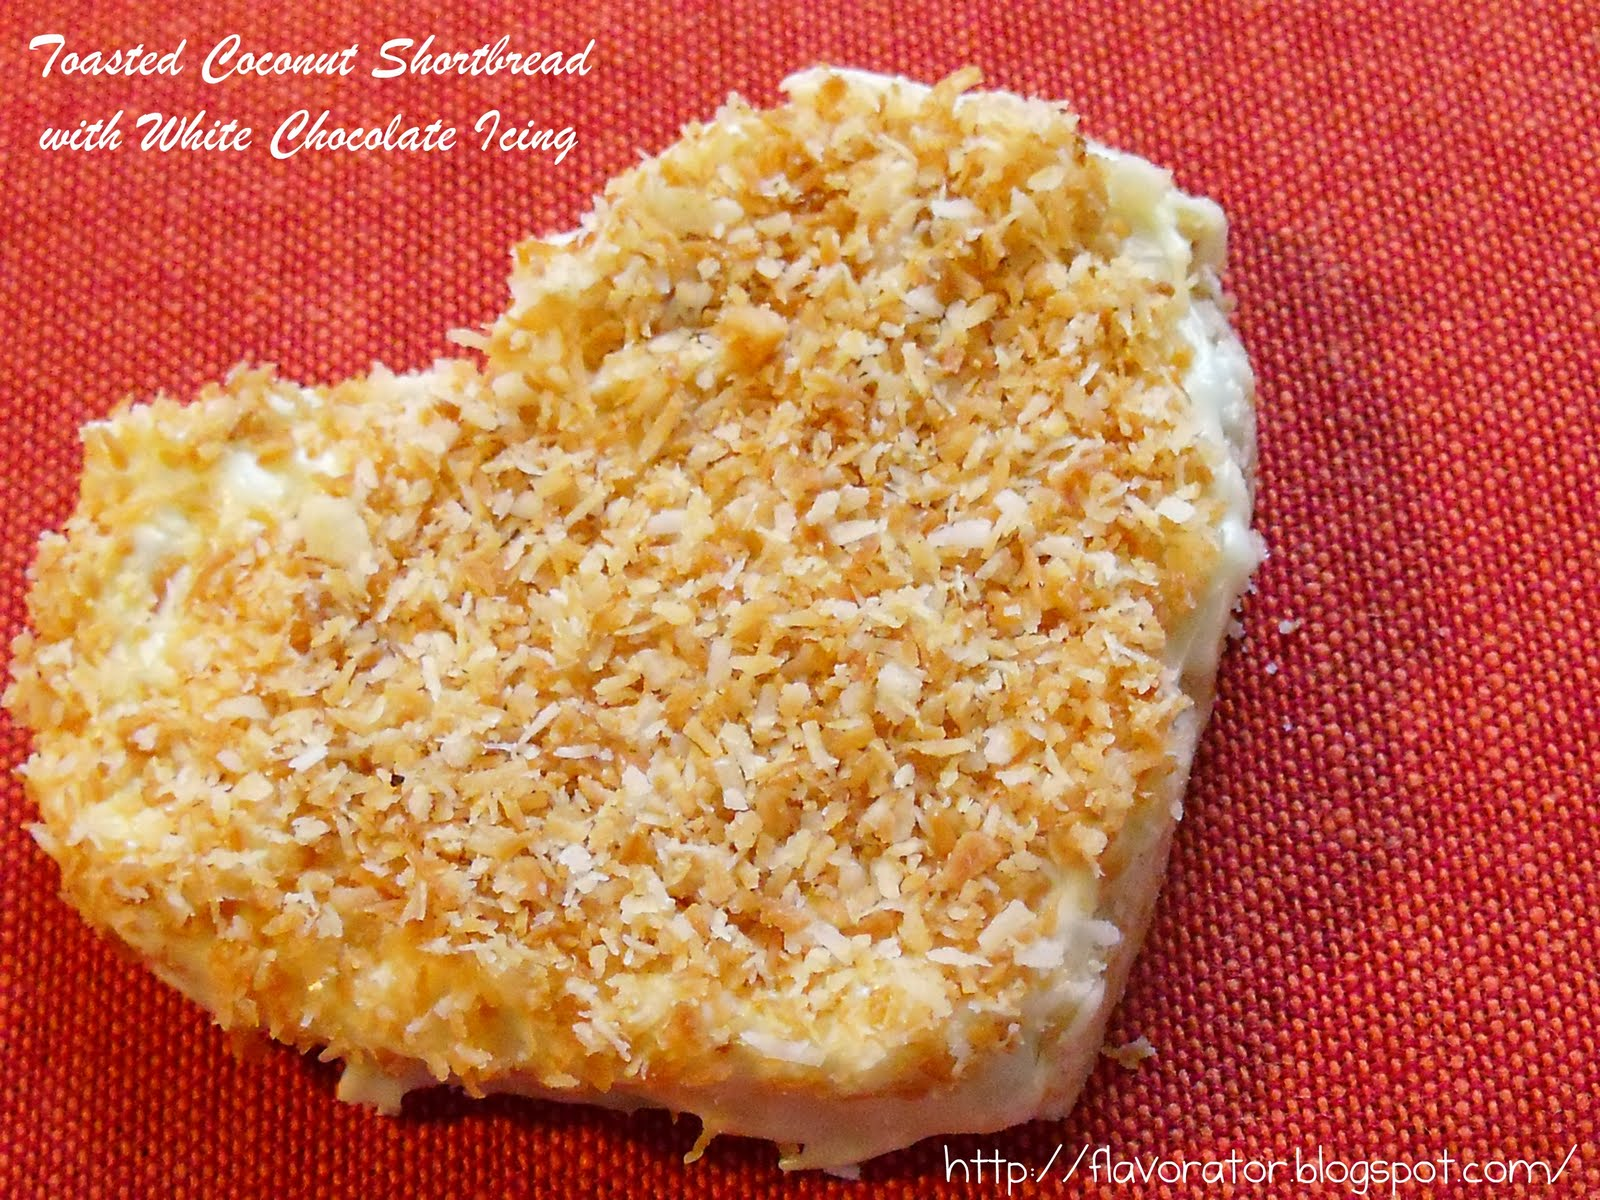 Toasted Coconut Shortbread with White Chocolate Icing + Cinnamon Candy ...